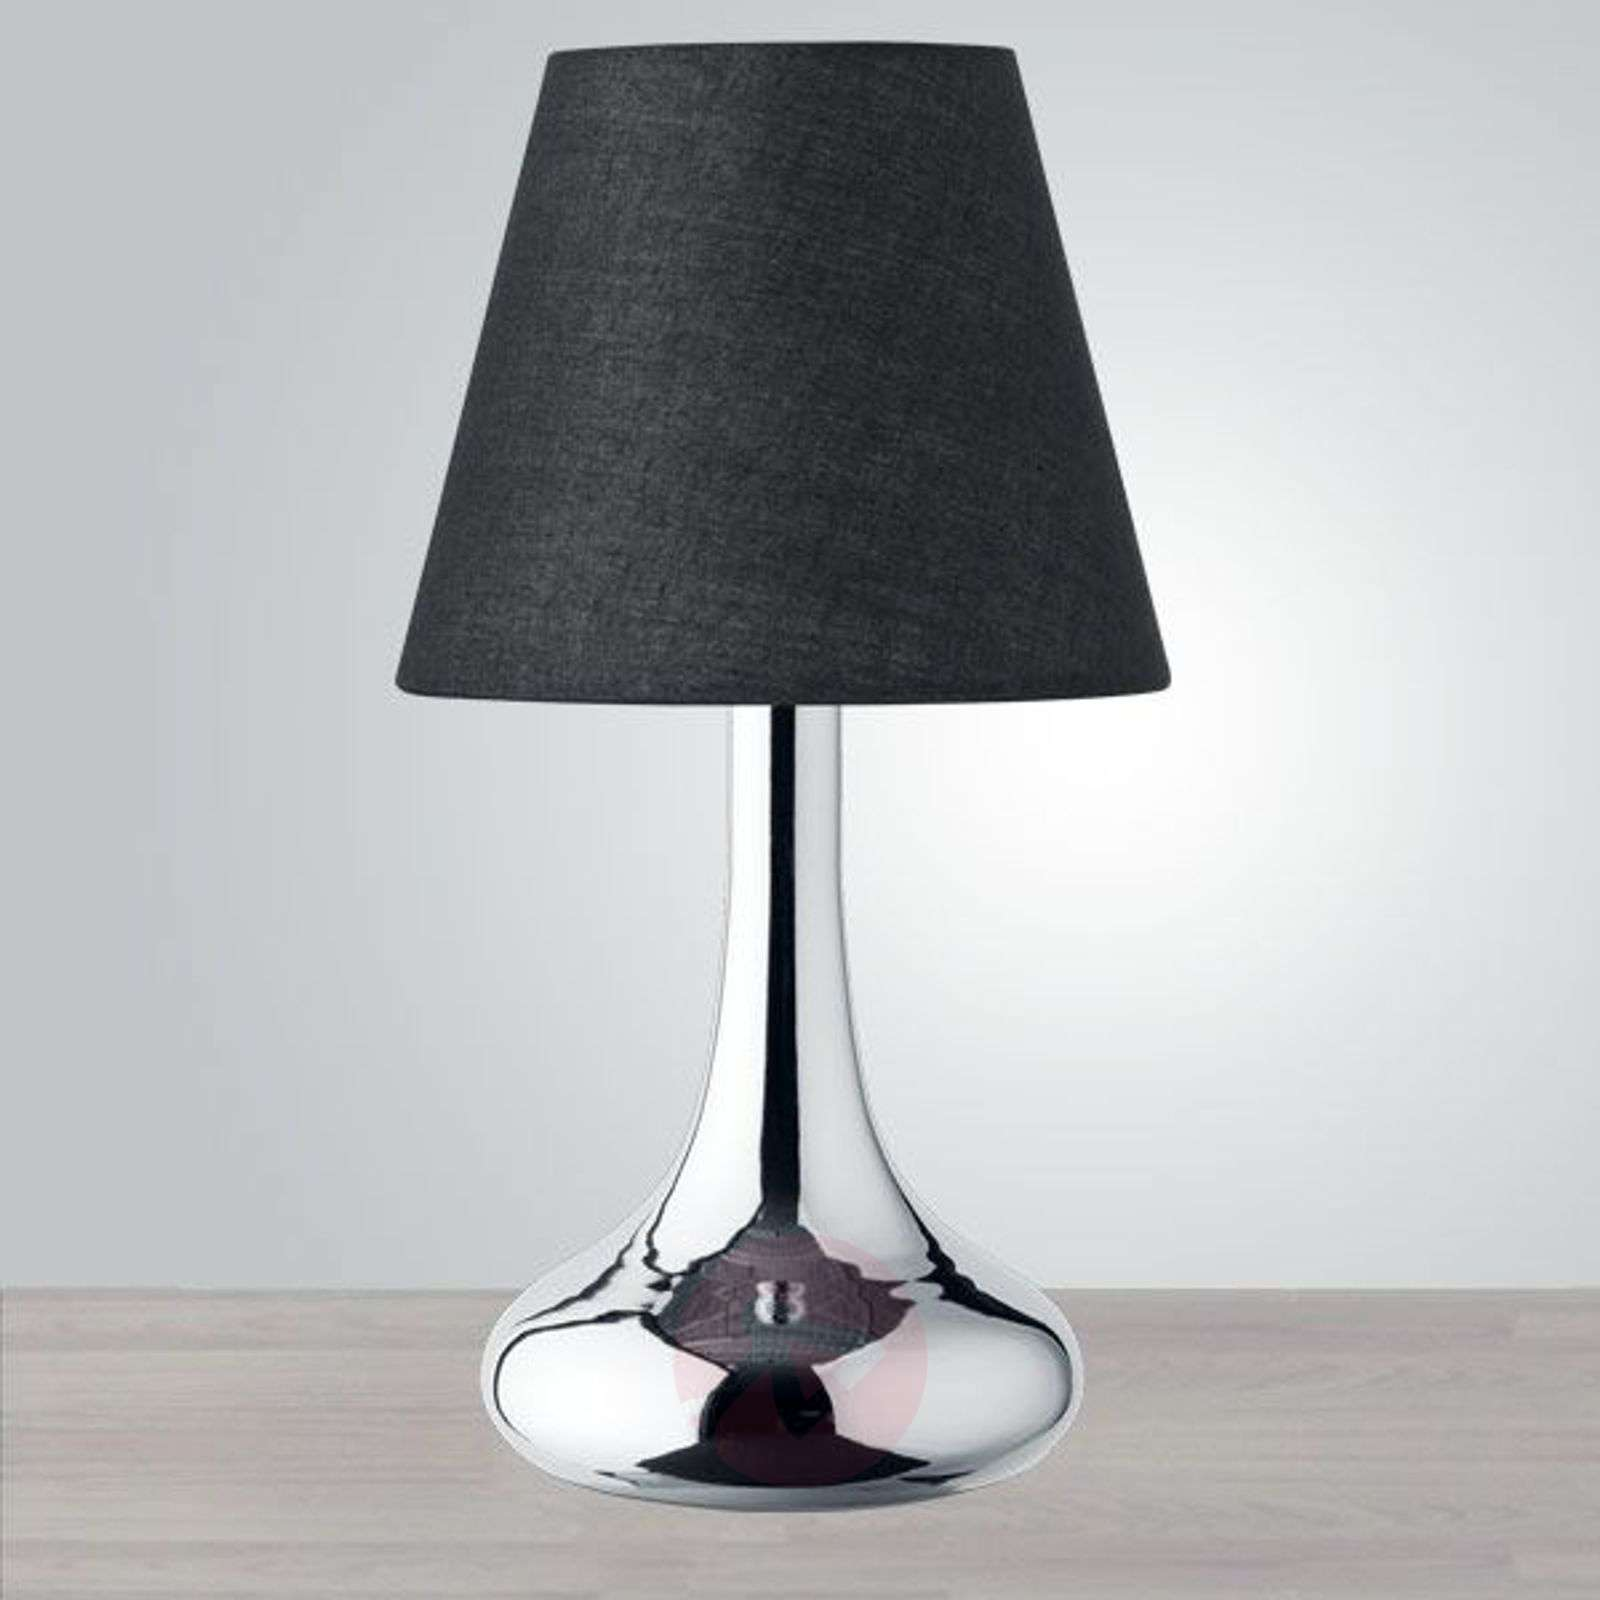 lampe poser d corative avec un pied bomb. Black Bedroom Furniture Sets. Home Design Ideas